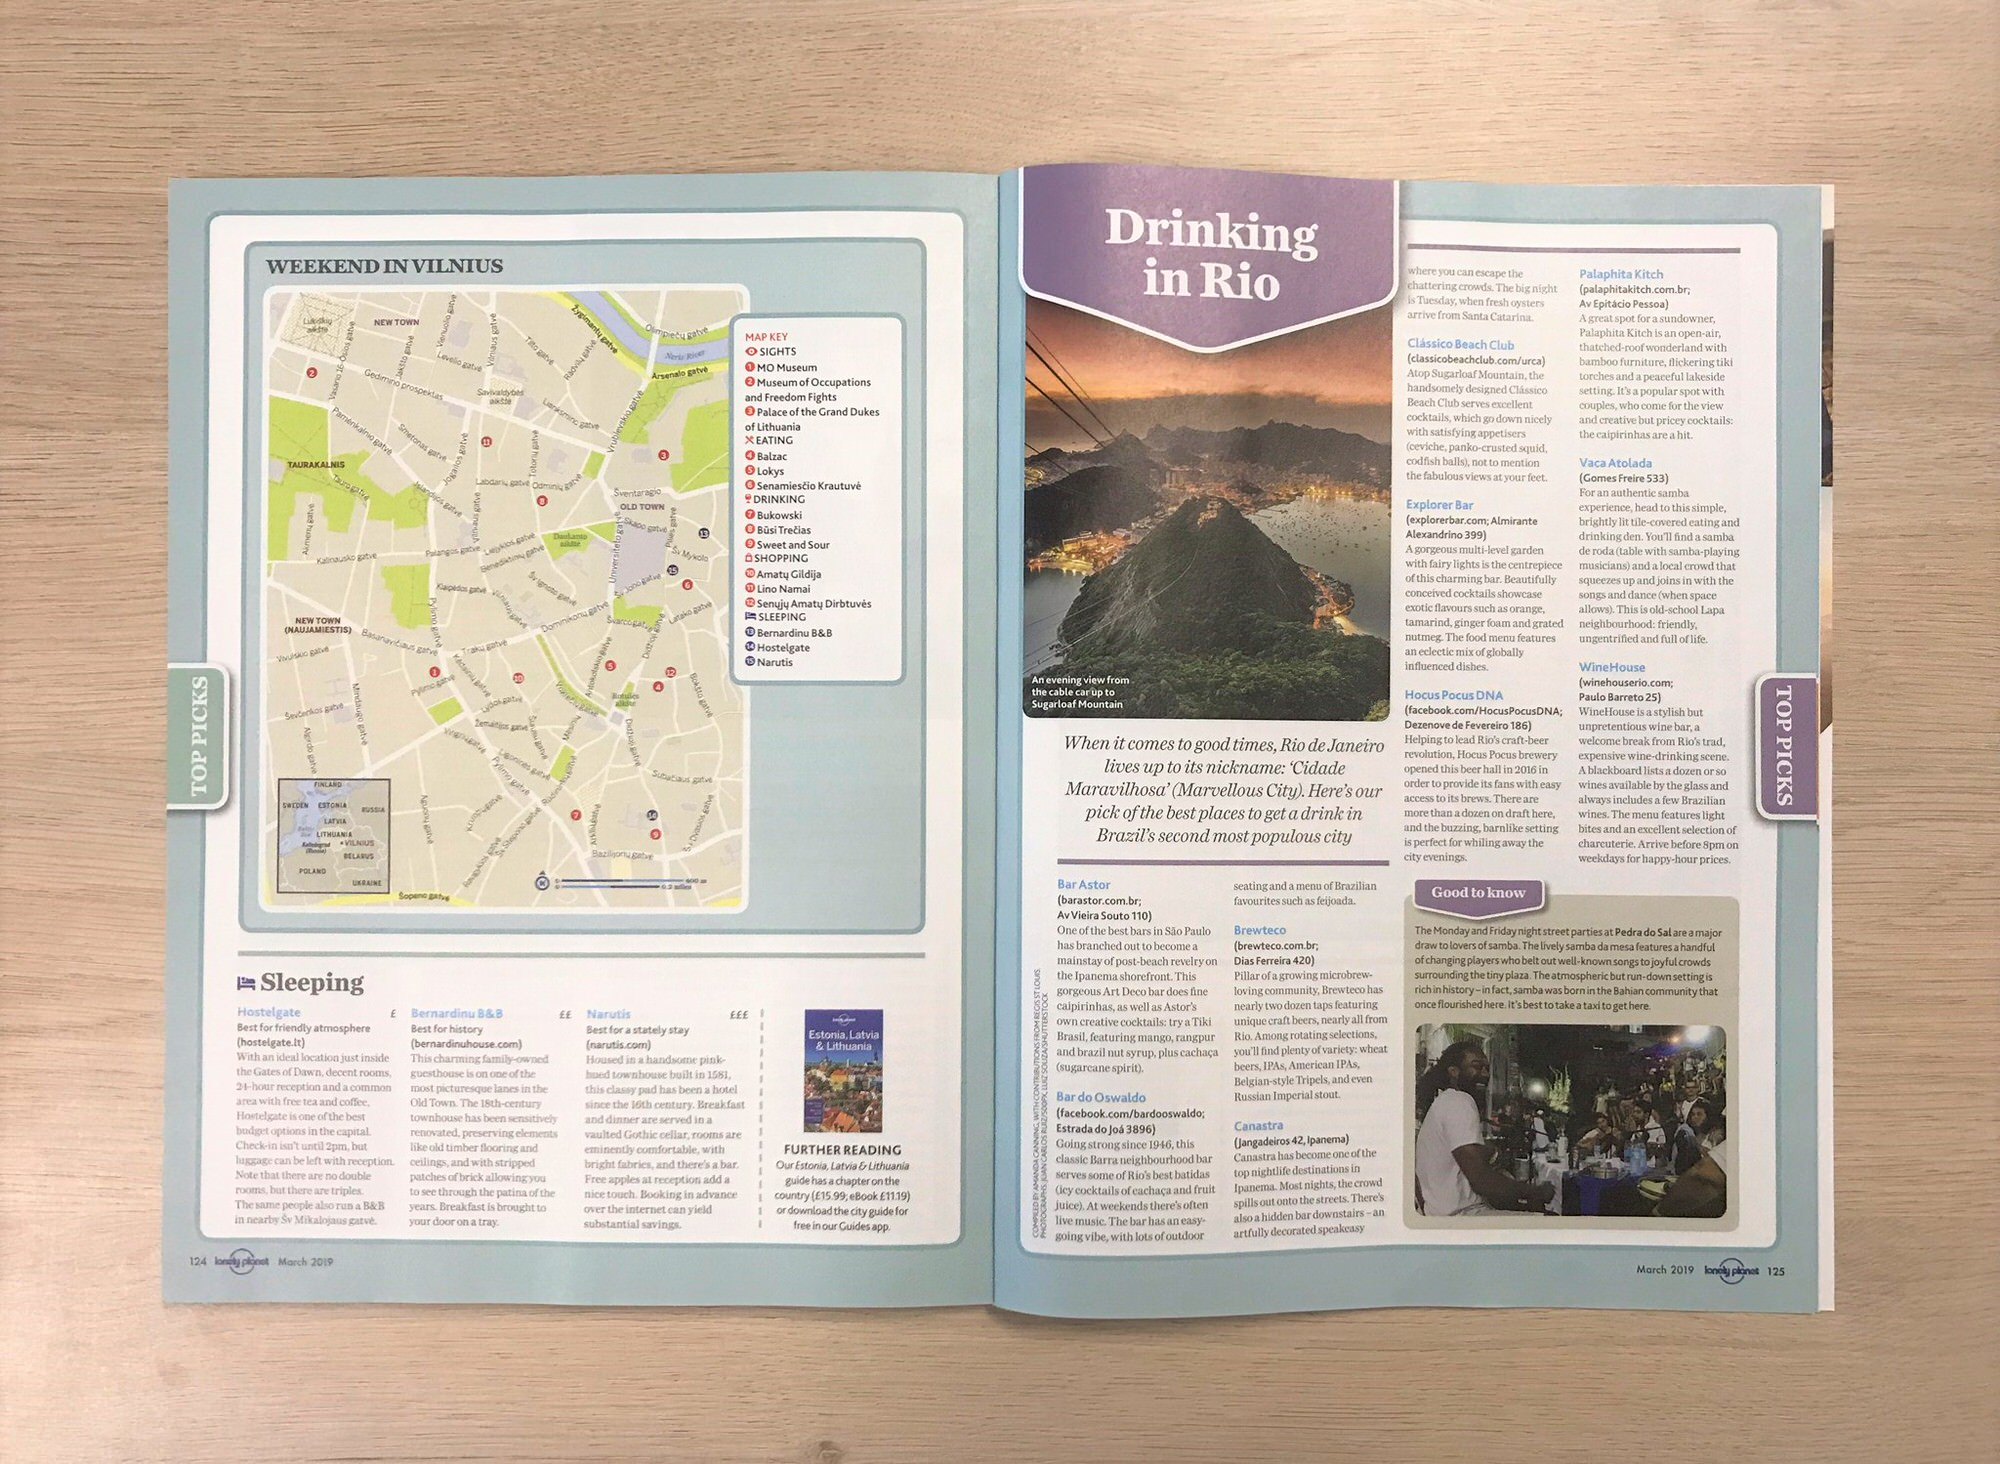 The March edition of Lonely Planet Magazine (UK) open to the Drinking in Rio mini-guide page